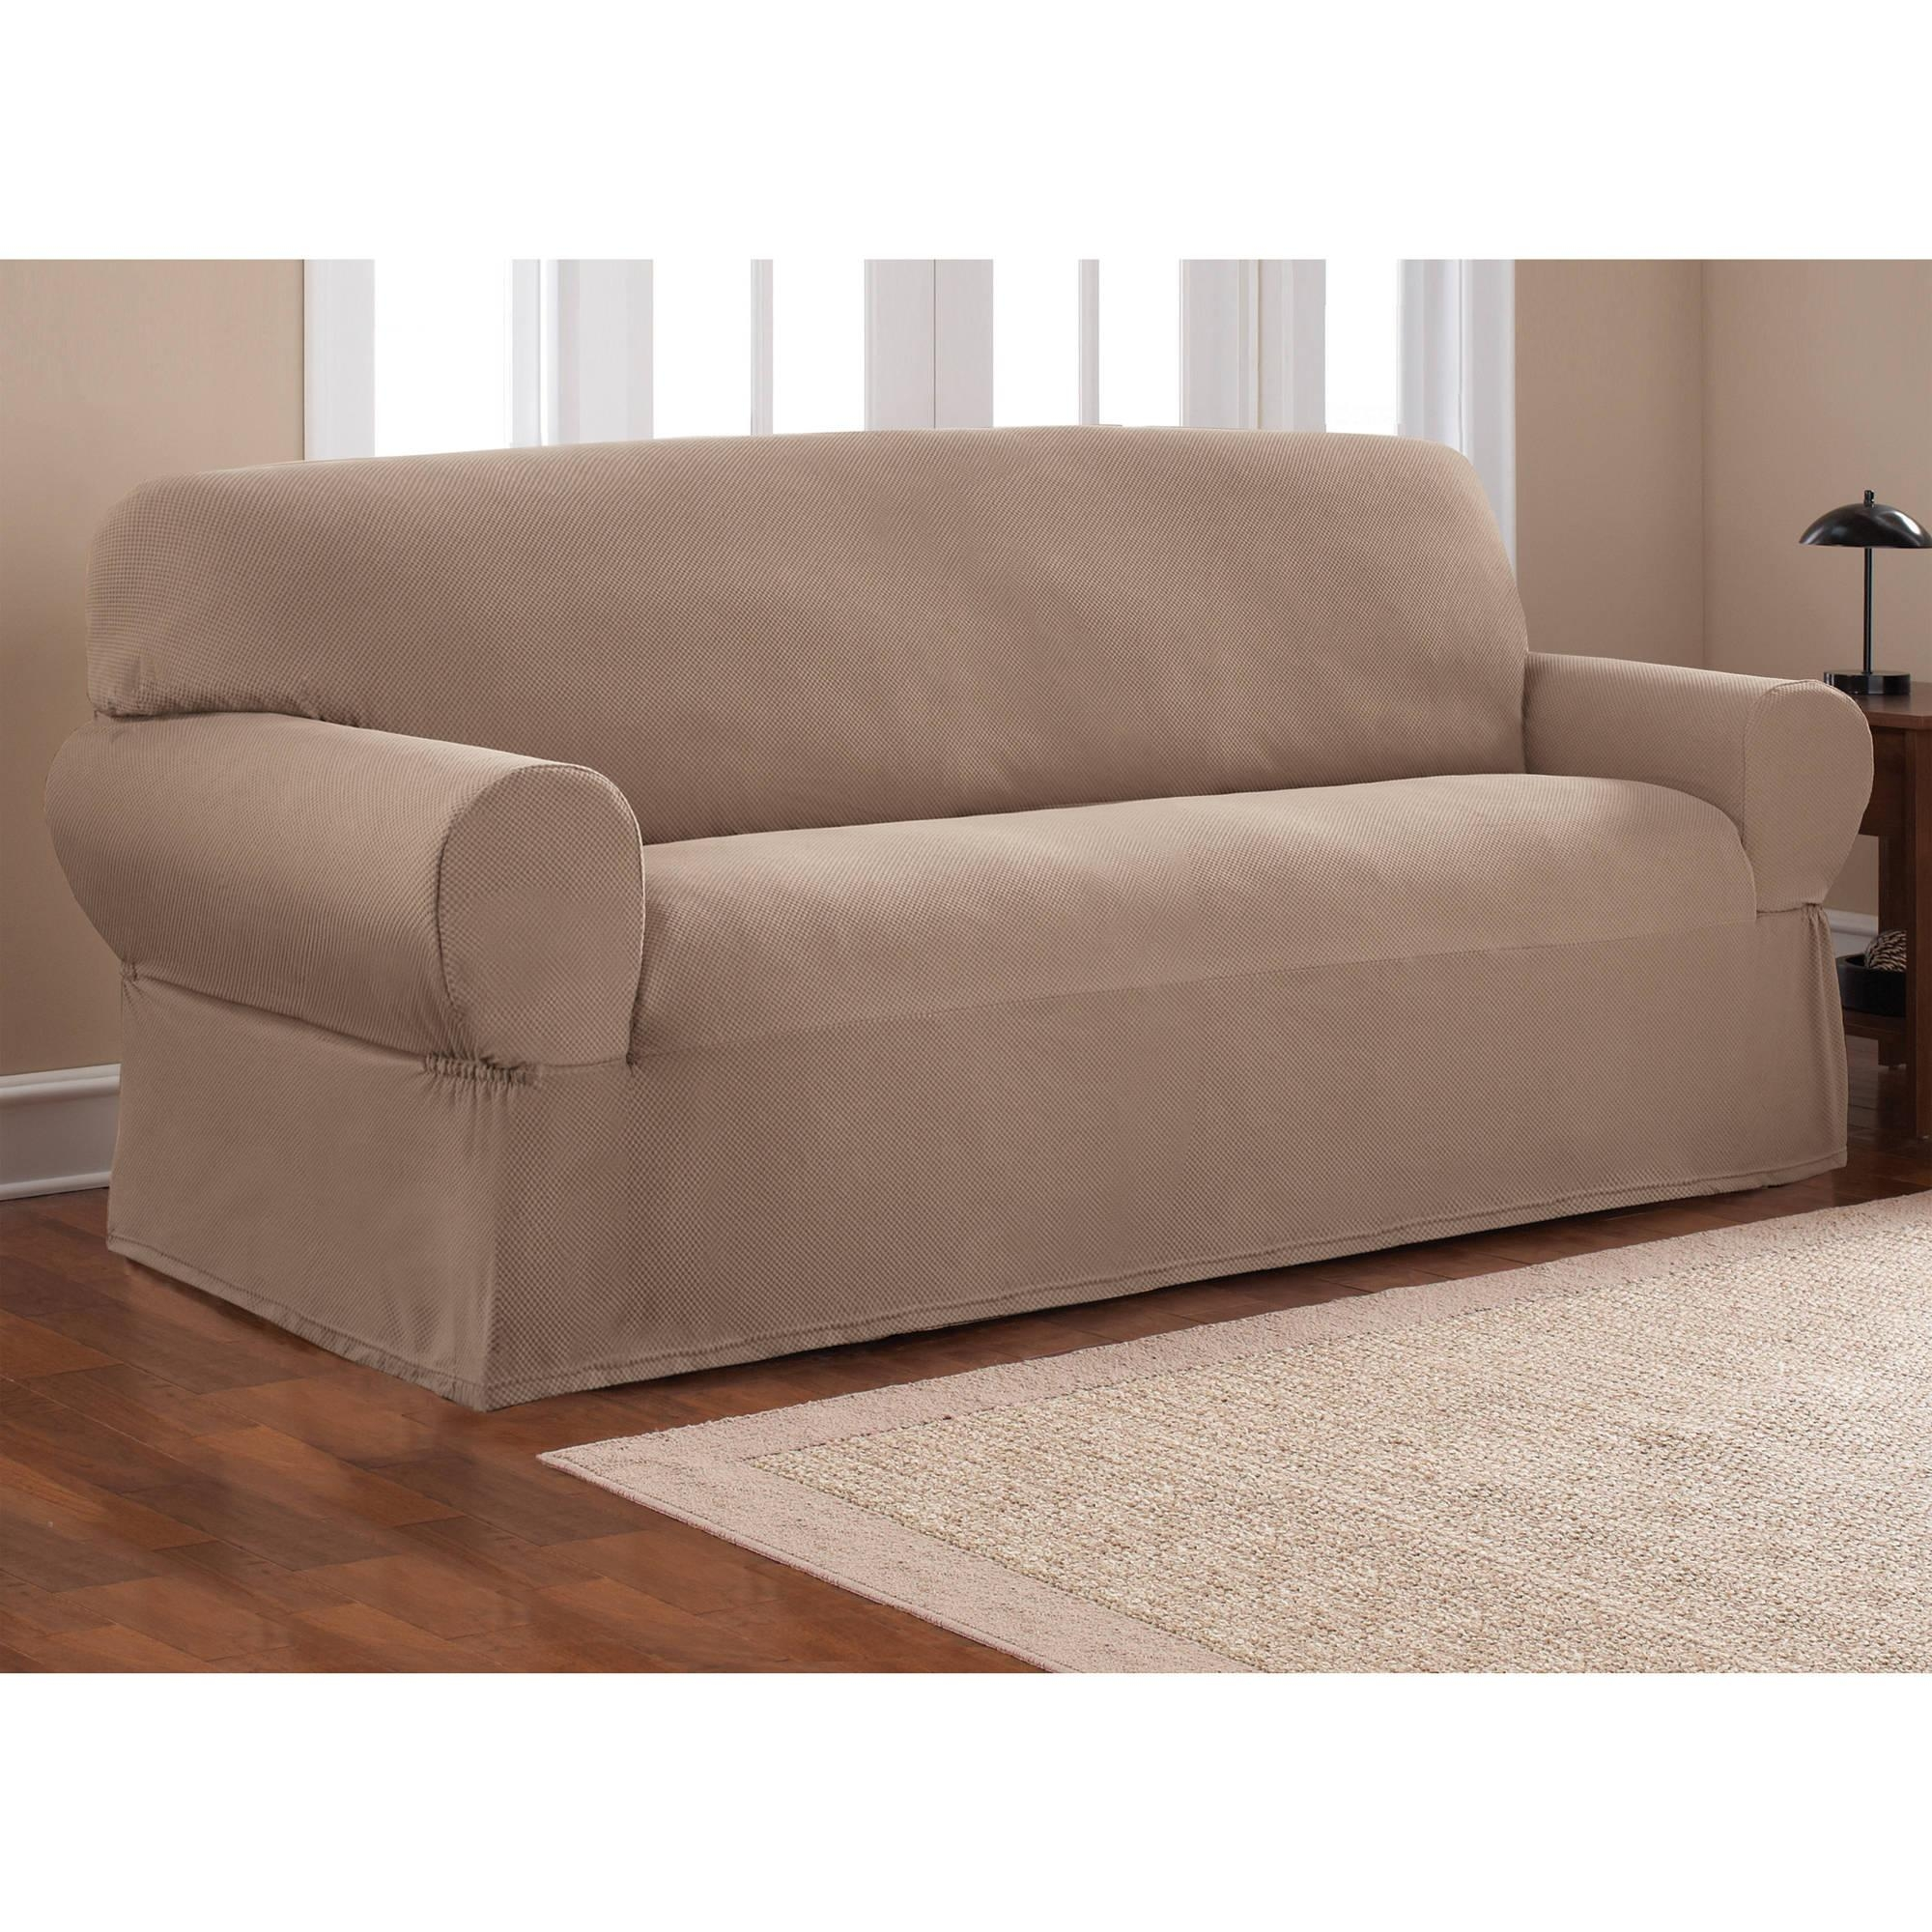 Mainstays 1 Piece Stretch Fabric Sofa Slipcover – Walmart Throughout Patterned Sofa Slipcovers (View 16 of 20)